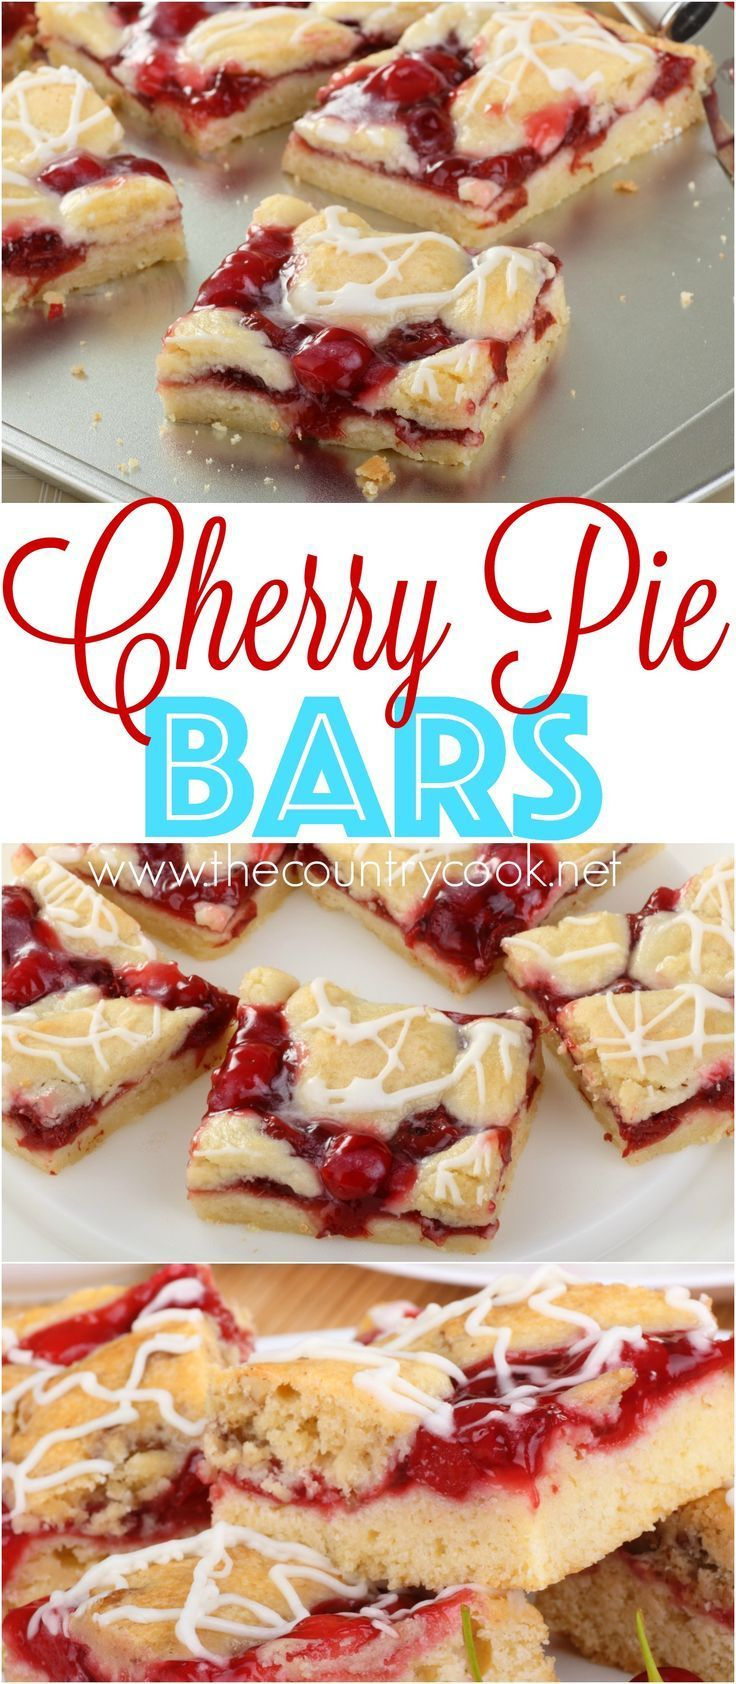 HOMEMADE CHERRY PIE BARS (+Video)